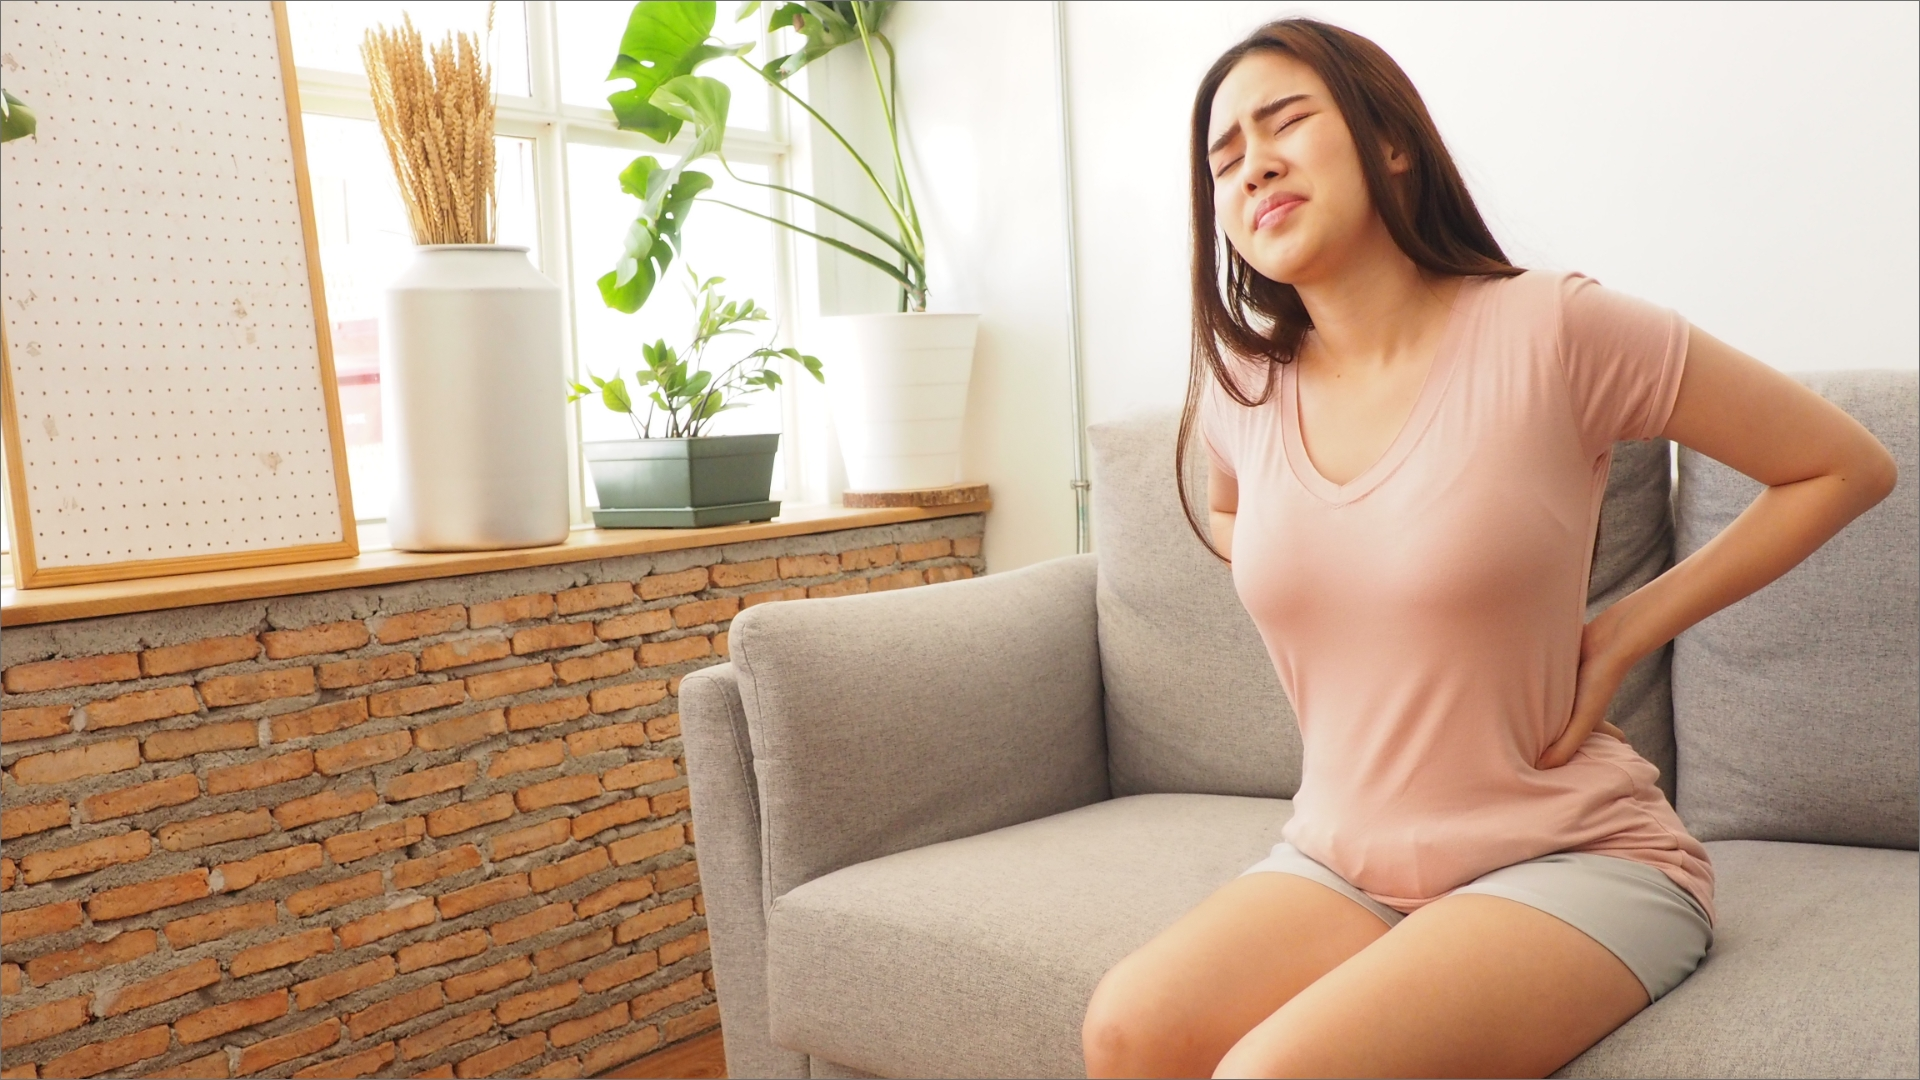 A lady stting on a sofa holding her back due to chronic back pain